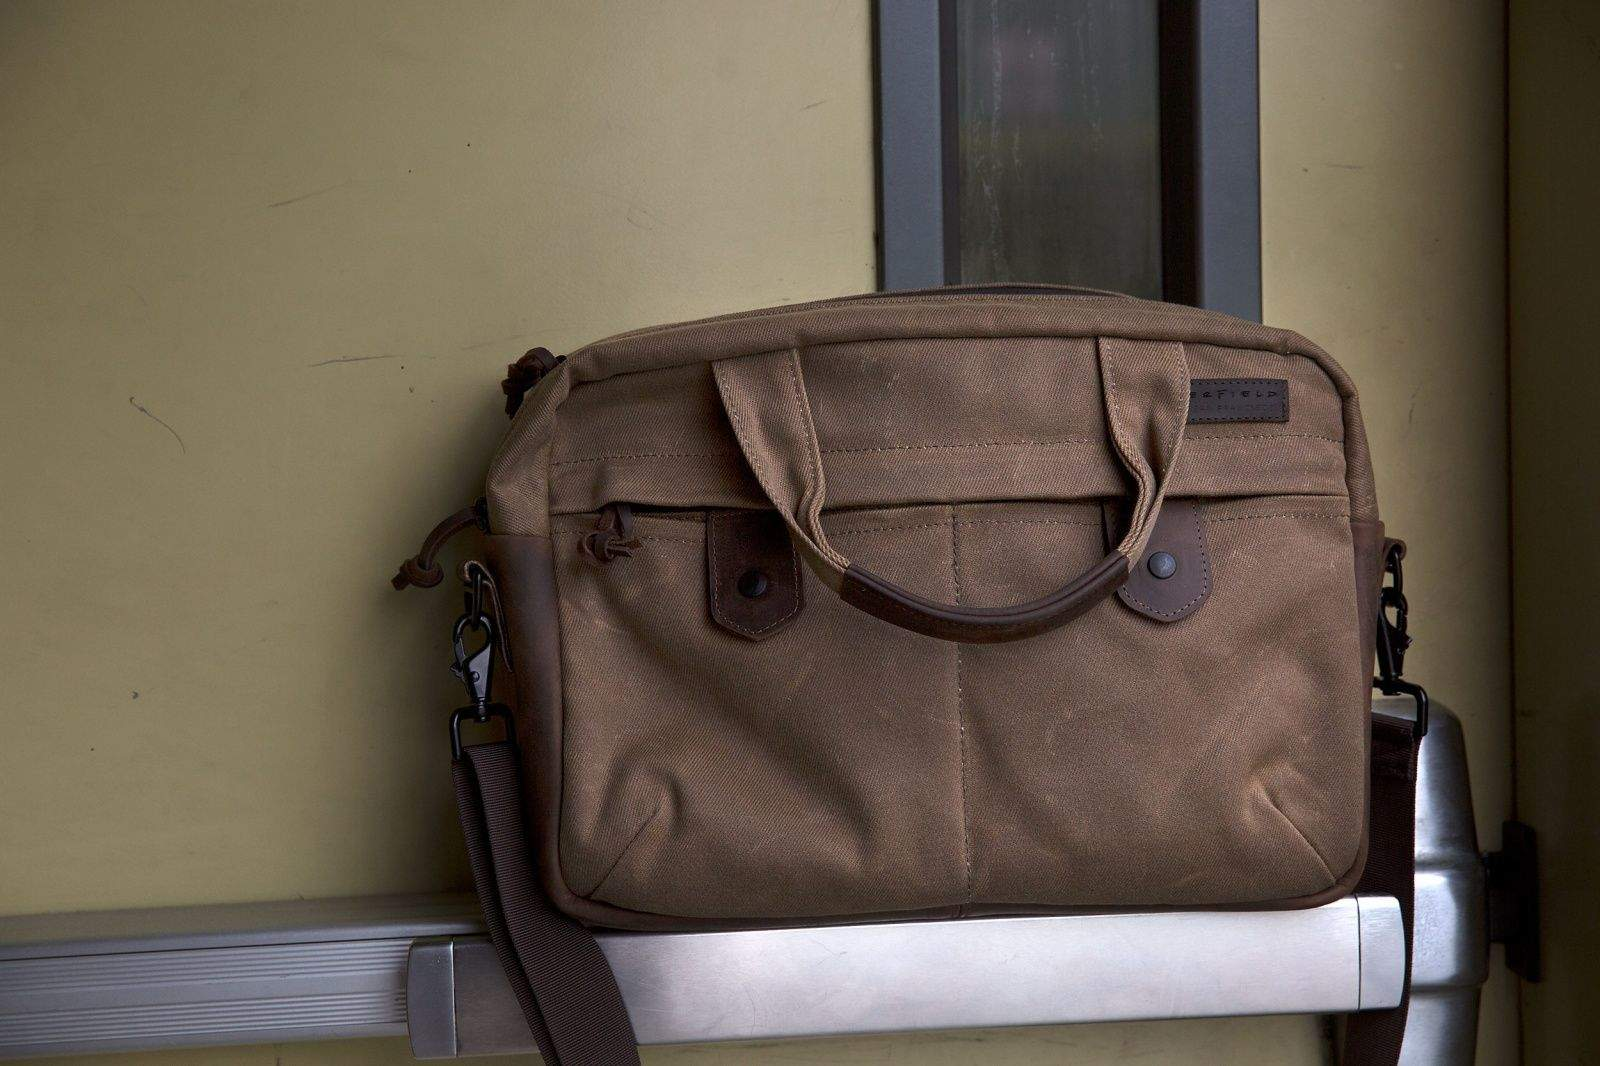 WaterField Designs' Bolt briefcase is not for hoarders who want to carry every infernal gadget with them everywhere they go. Like the impossibly thin new MacBook, it's stripped down to the essentials — and the essentials are stylish, sturdy and compelling.   The $249 Bolt will surprise you with its slimness. It comes in two sizes — the small one I tested holds up to a 13-inch MacBook Air (the larger model holds up to a 17-inch laptop). After sliding in an 11-inch Air, an iPad and an envelope full of documents, the Bolt was fairly full; there was barely room to toss in a pair of headphones.    But that's the point of the Bolt. It's designed for carting around your must-have gear in a sleek, pleasing package. The brown waxed canvas bag looked good out of the gate (and even better after a few trips gave it more character). The chocolate leather accents, including a thick bottom that's perfect for keeping grime at bay, seem like they will only look better over time.   The craftsmanship employed by the San Francisco bag maker is evident from the first zip of the Bolt's hefty, waterproof zipper or the first flip of the